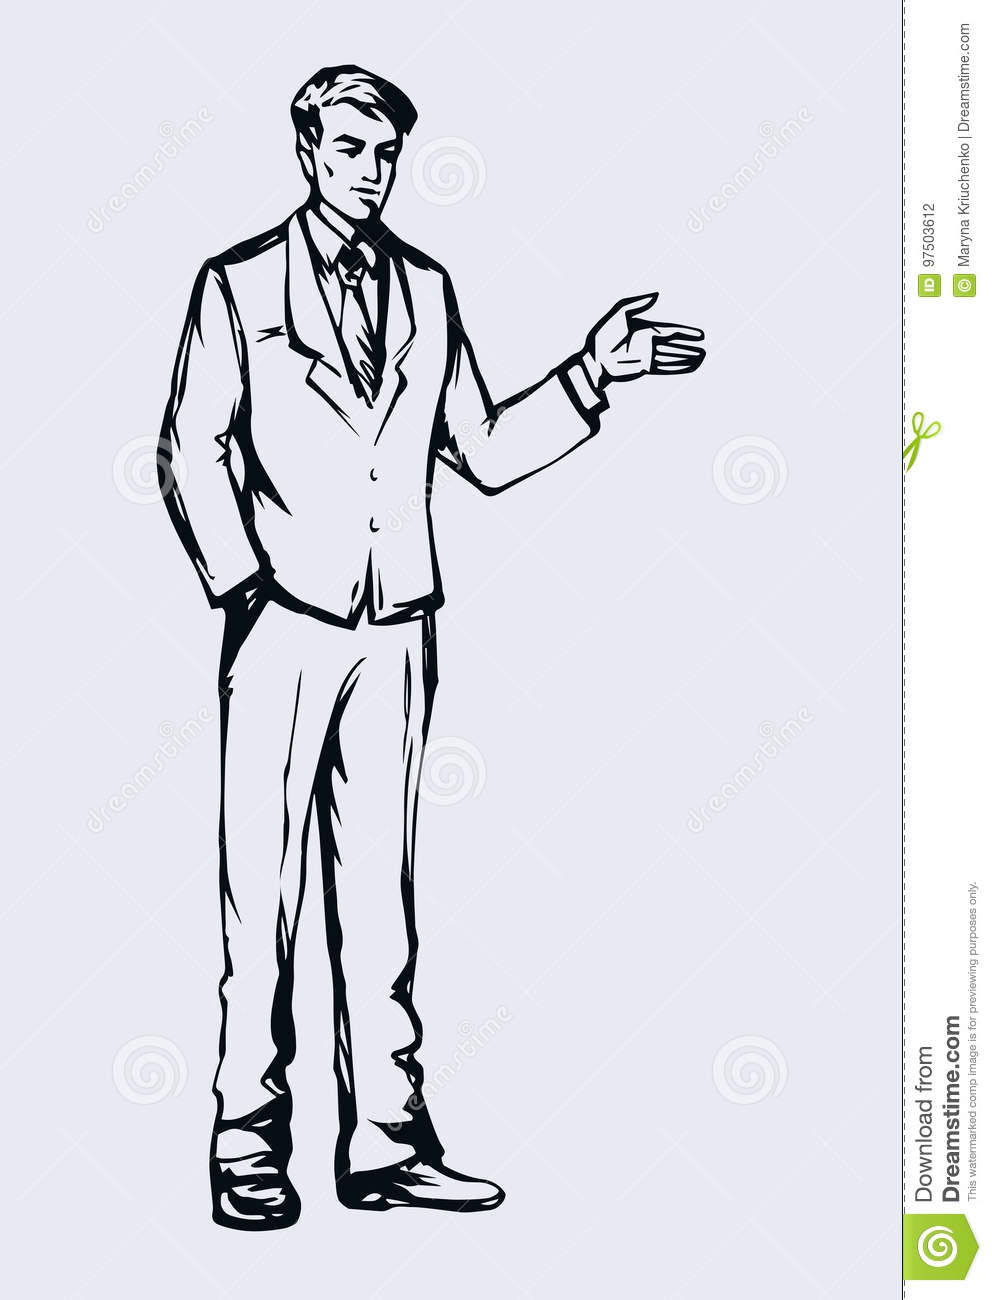 business man vector drawing stock vector illustration of graphic